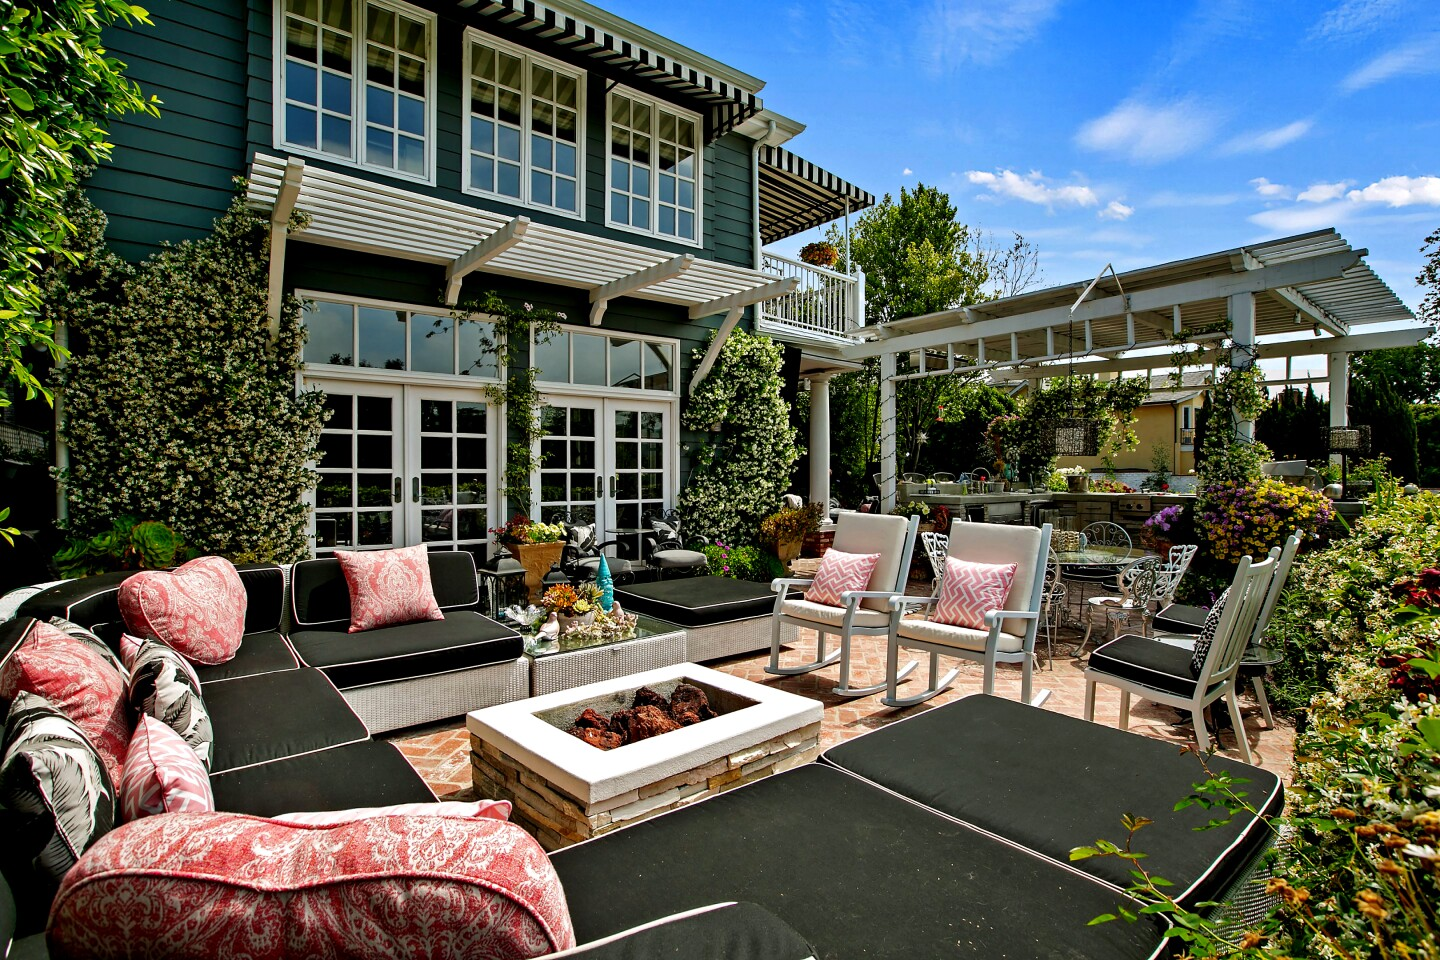 Actress Kirsten Dunst found a buyer for her longtime home in Toluca Lake in fellow actress Annie Potts. The charming traditional-style home, which sits on a lakeside lot with a swimming pool, sold for $4.55 million after hitting the market in June for $4.7 million. The 4,333-square-foot house features a vaulted-ceiling living room with a fireplace, a custom kitchen and a family room that opens to the backyard. Outside, living and entertaining spaces include a custom-built gazebo, various patios and a built-in barbecue. There's also a private dock.